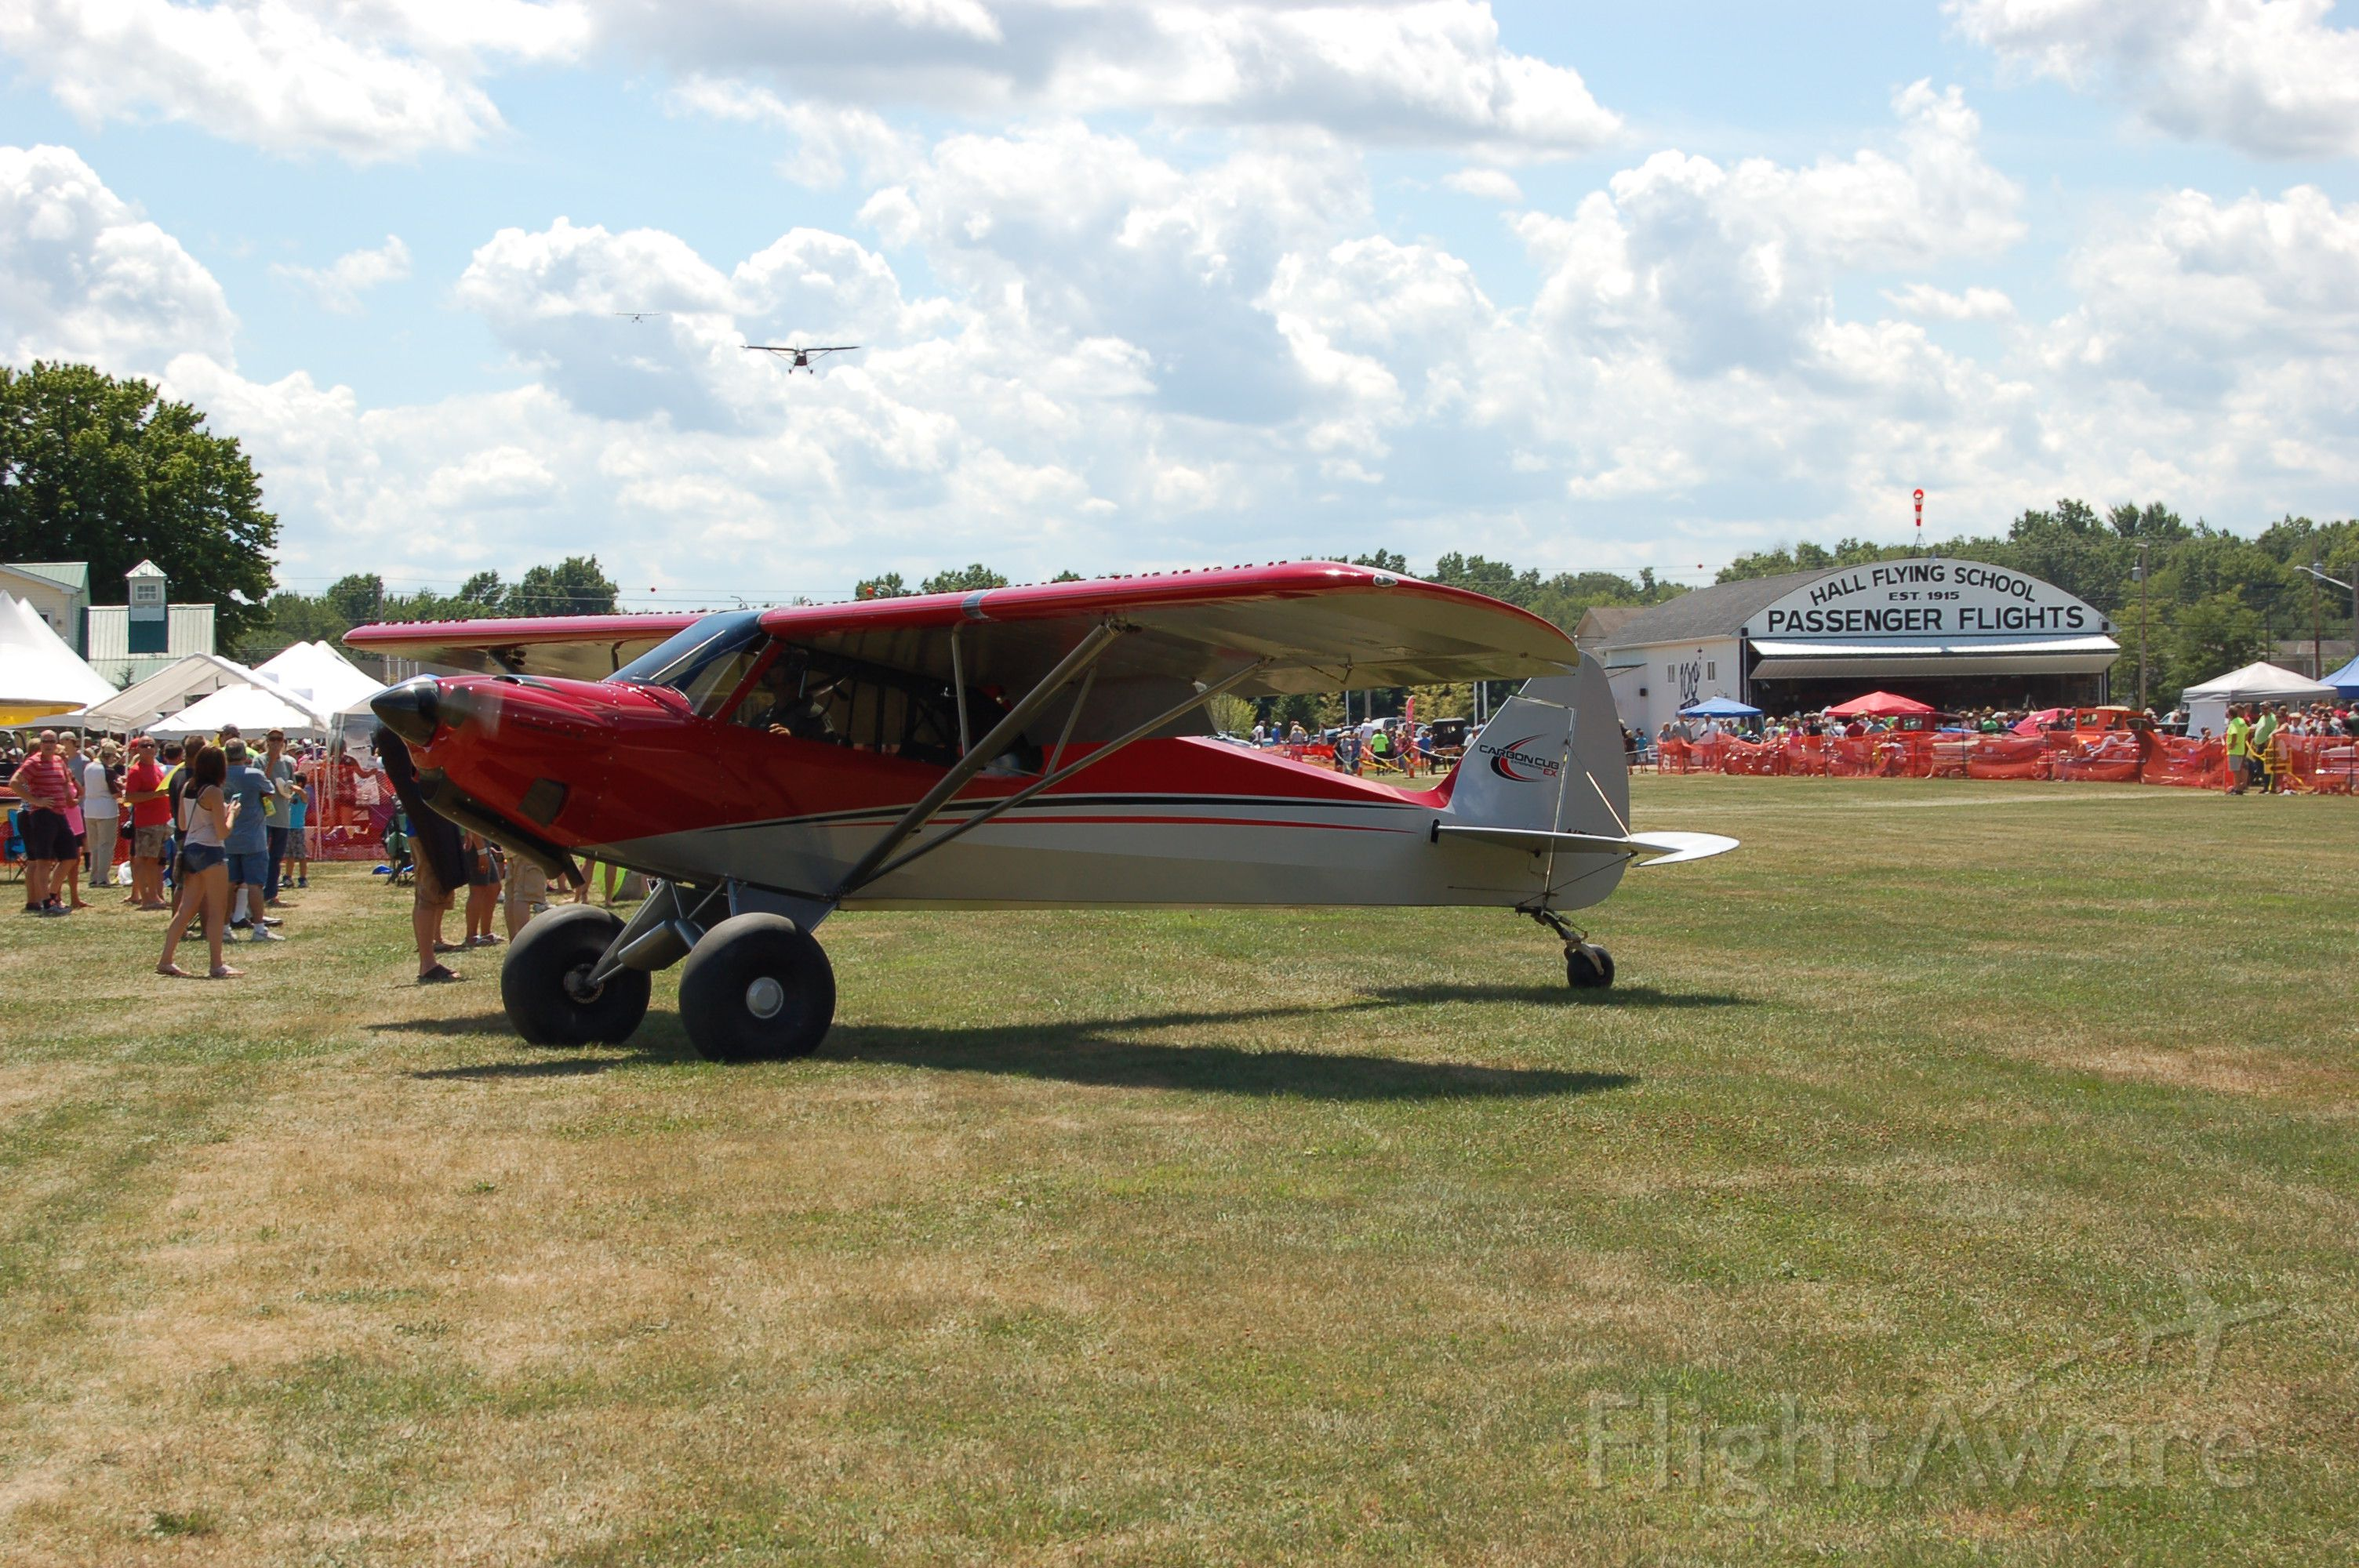 — — - Wings & Wheels 2016! Sloas Field. Carbon Cub, gets off the ground in about 100